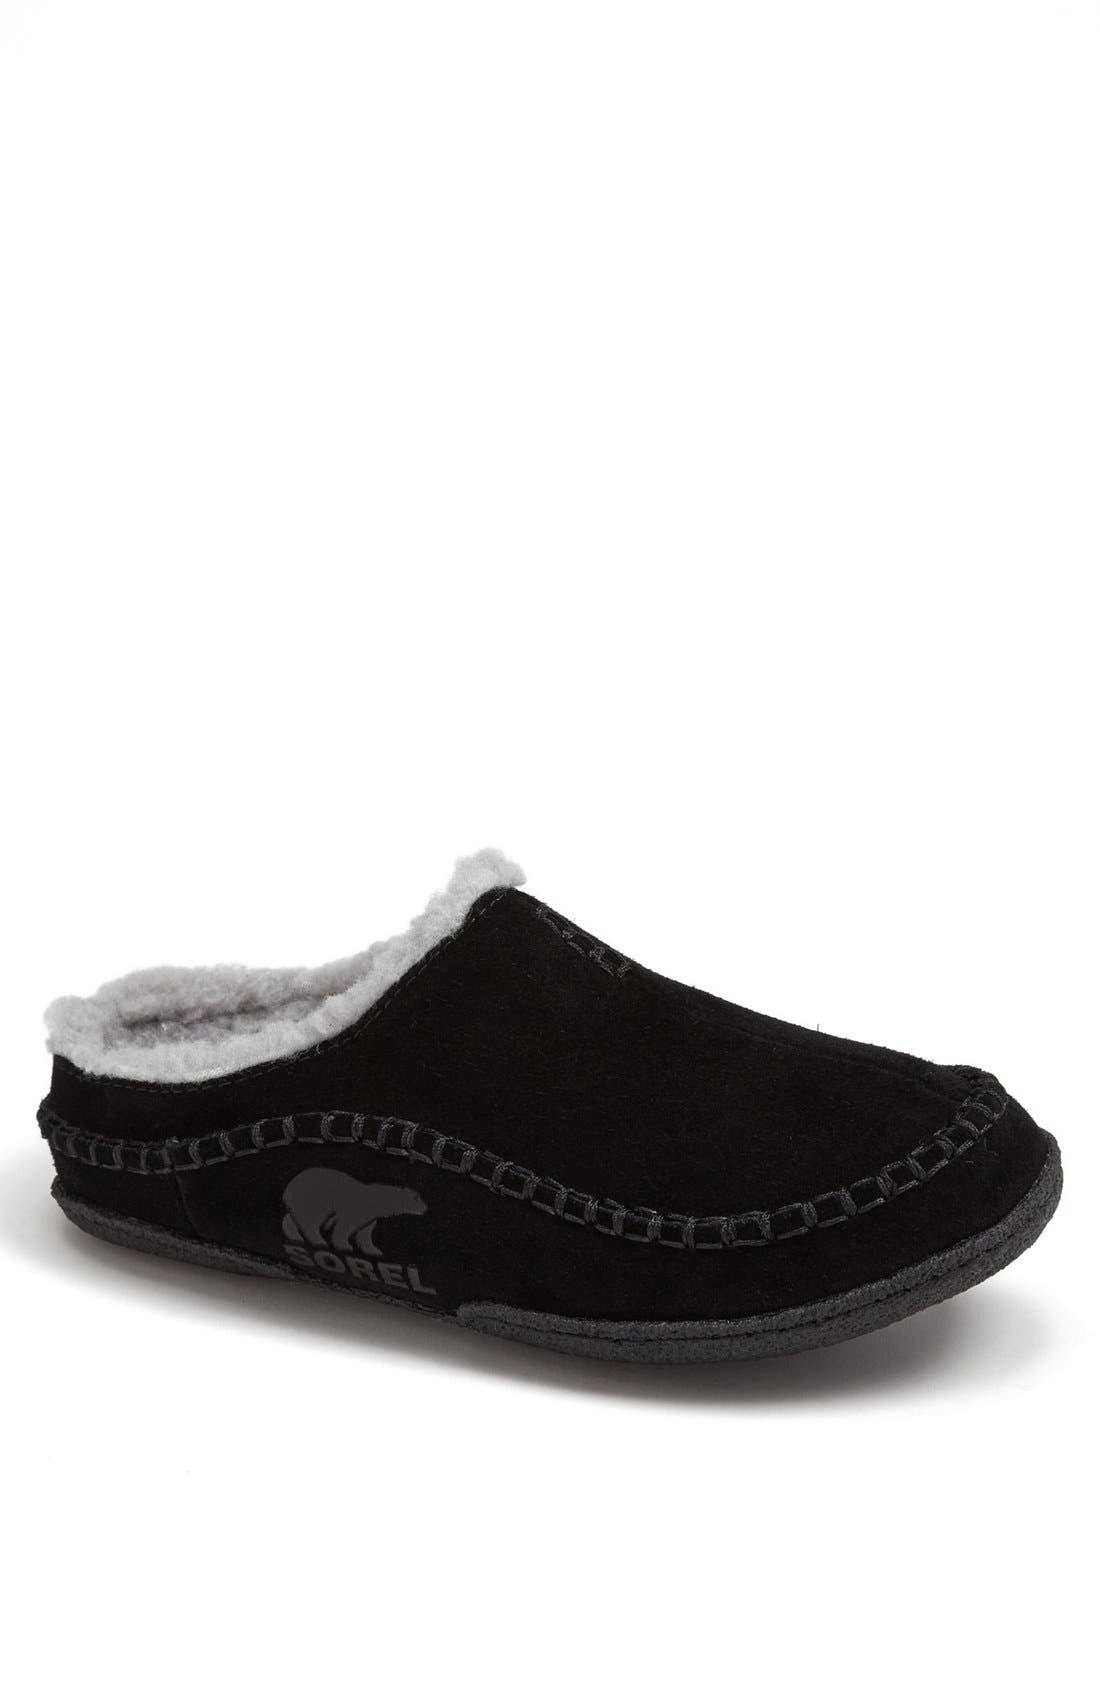 'Falcon Ridge' Slipper, Main, color, 010